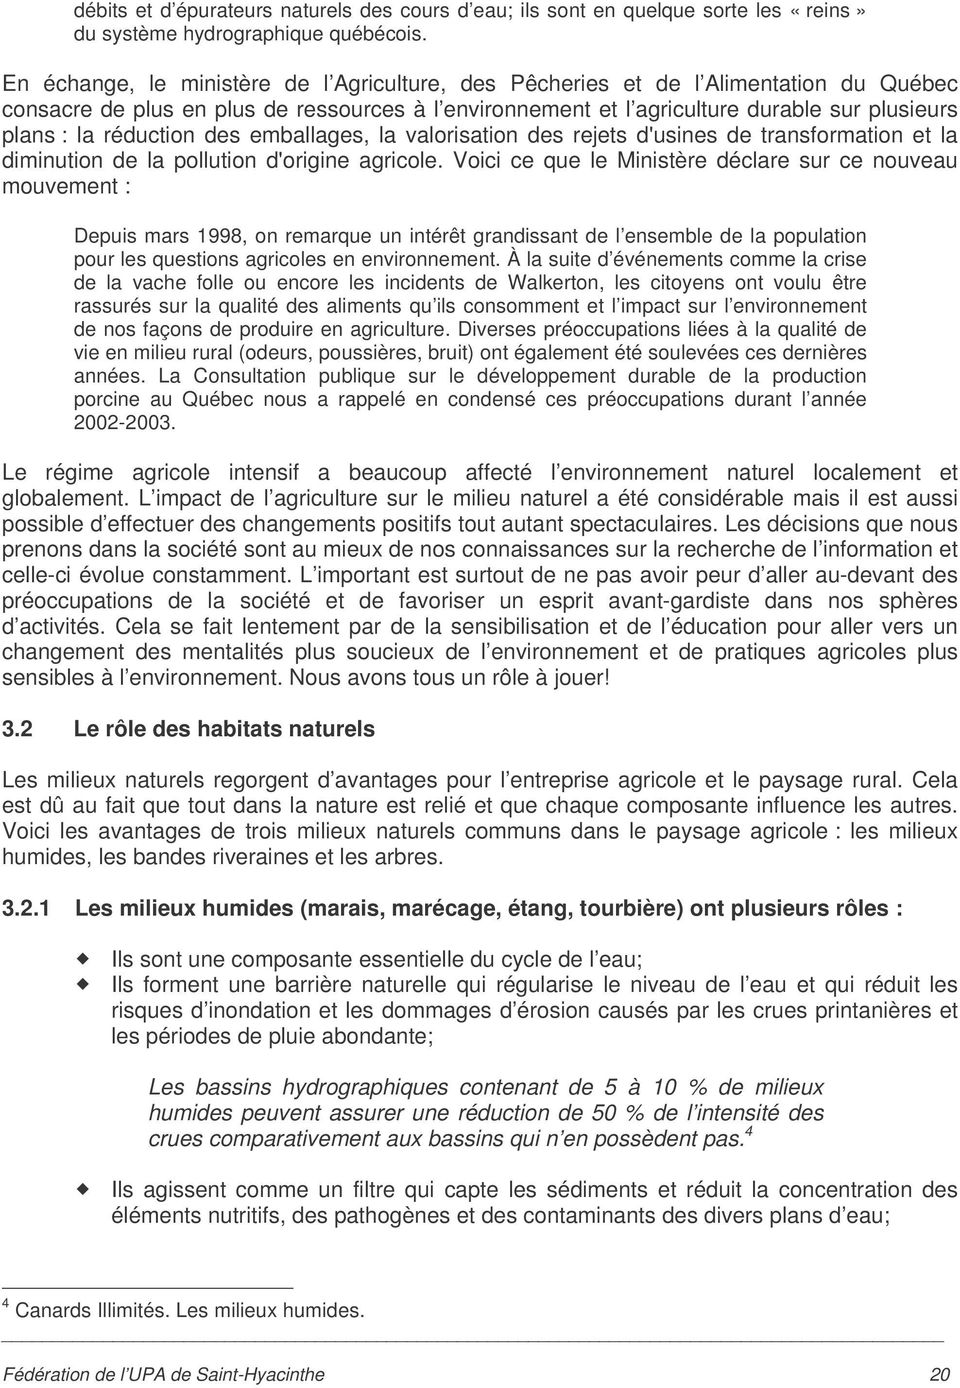 réduction des emballages, la valorisation des rejets d'usines de transformation et la diminution de la pollution d'origine agricole.